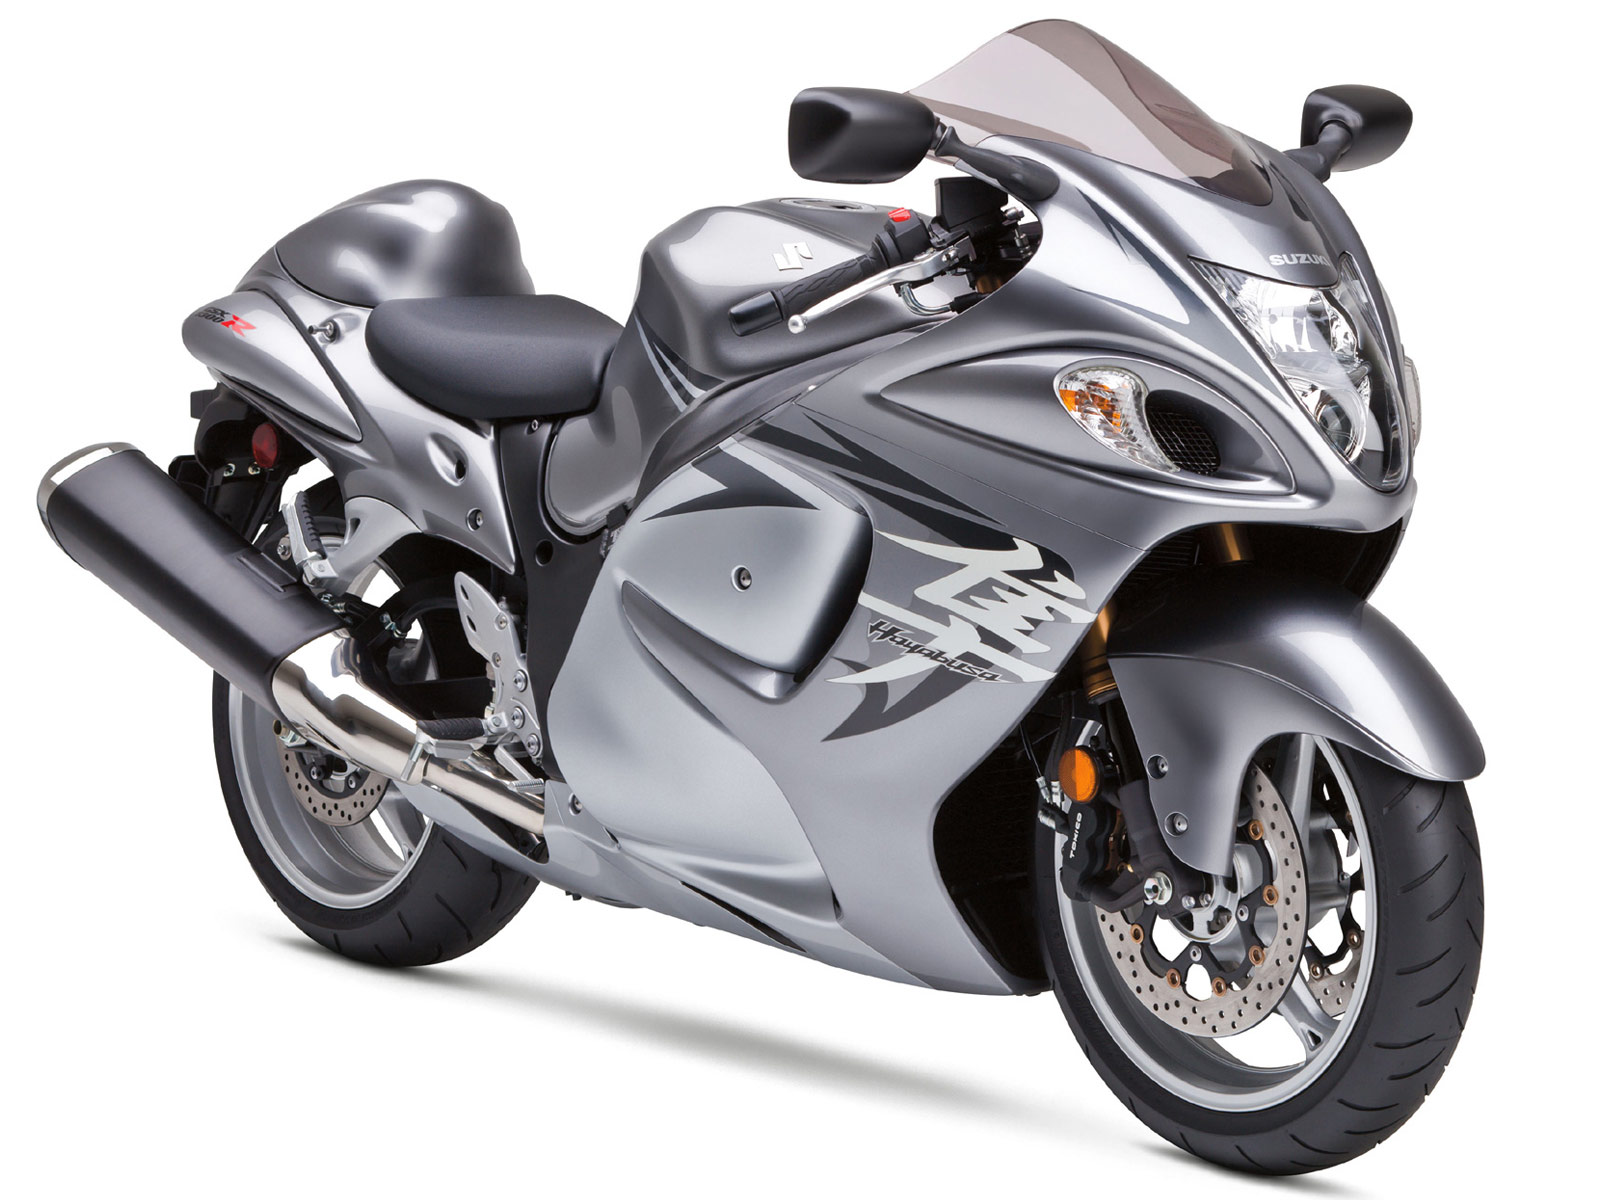 Bikes Wallpapers HD Hayabusa Bikes Wallpapers 1600x1200